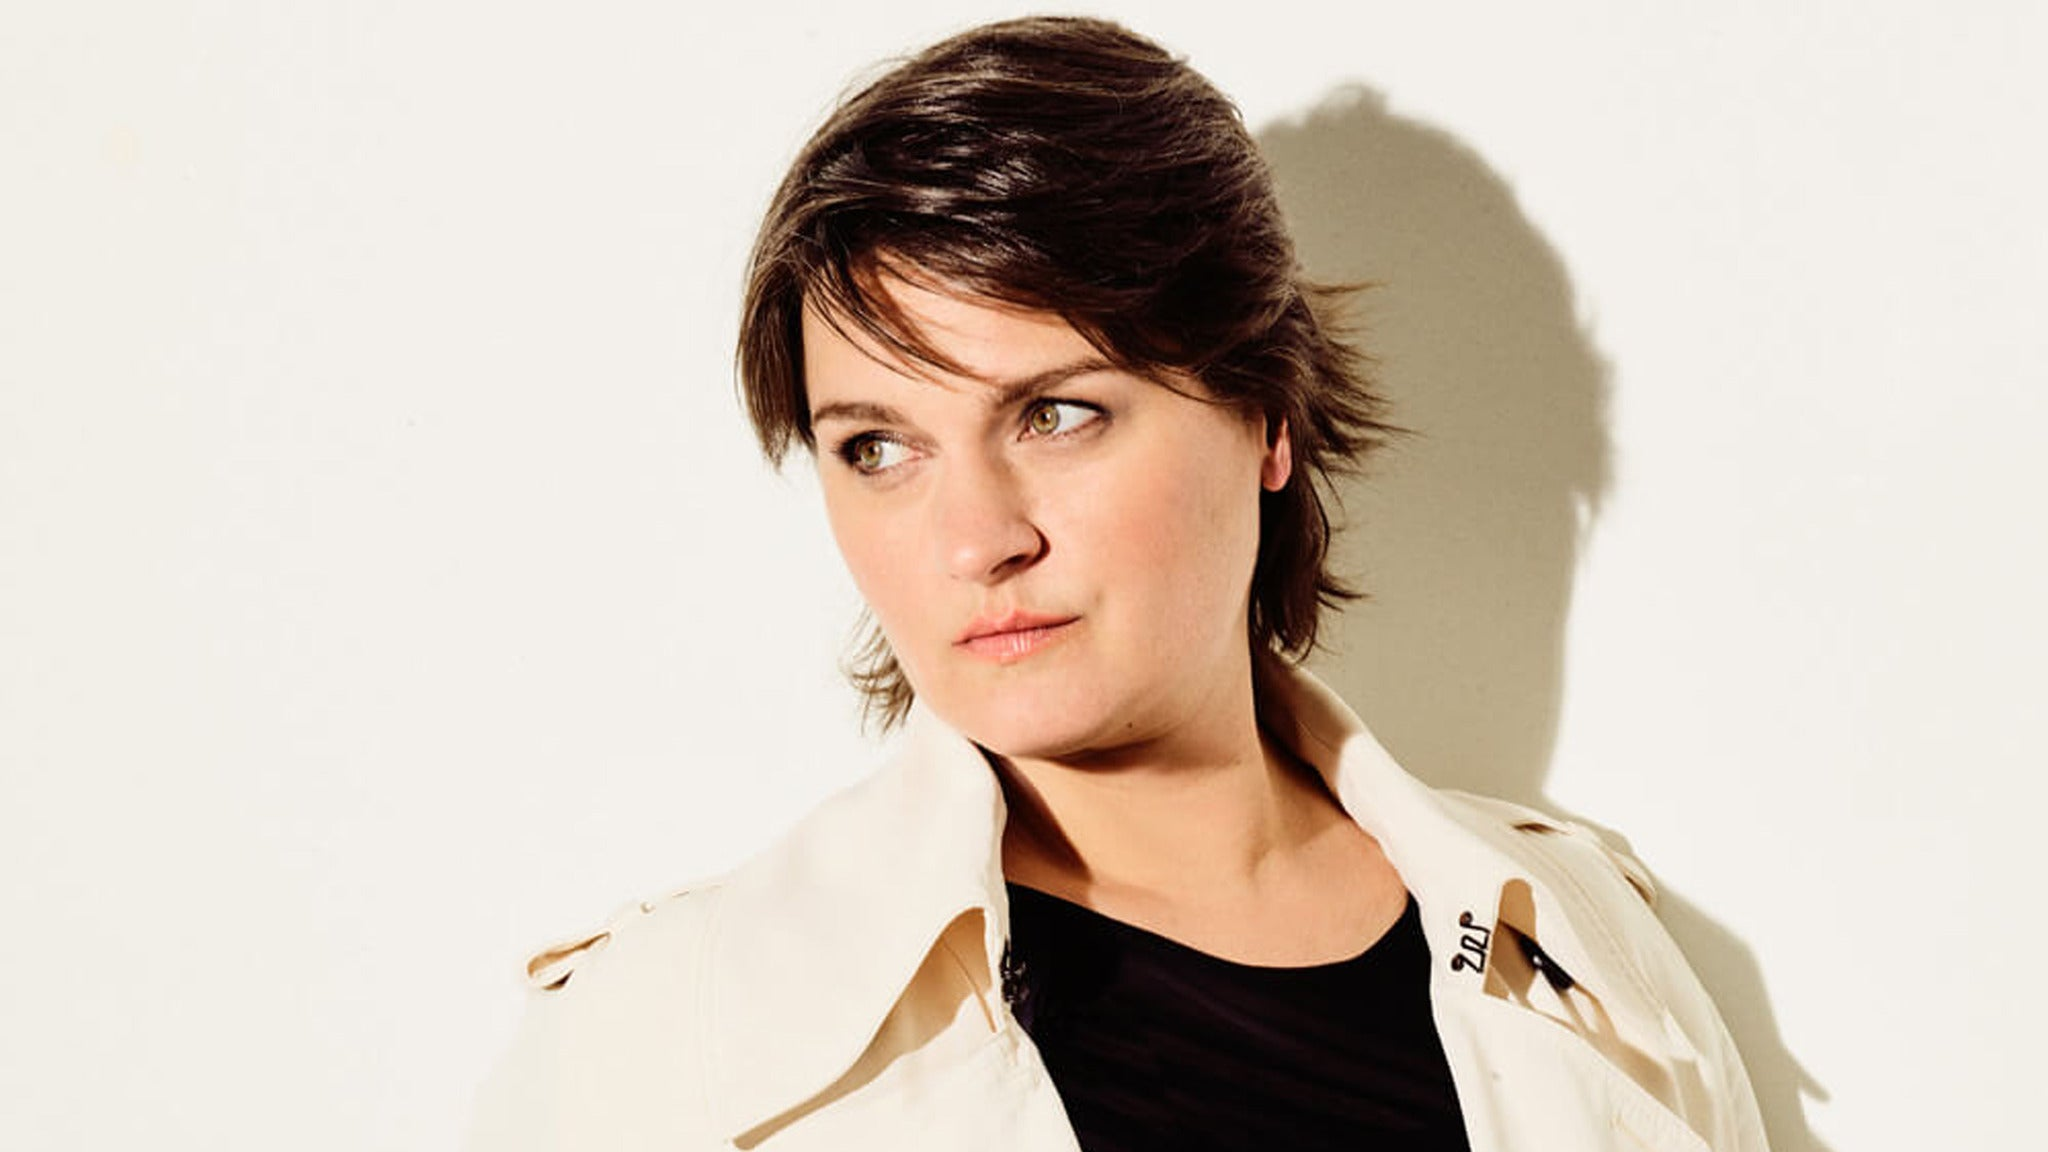 Madeleine Peyroux & Paula Cole pre-sale password for event tickets in Harrisburg, PA (Whitaker Center)